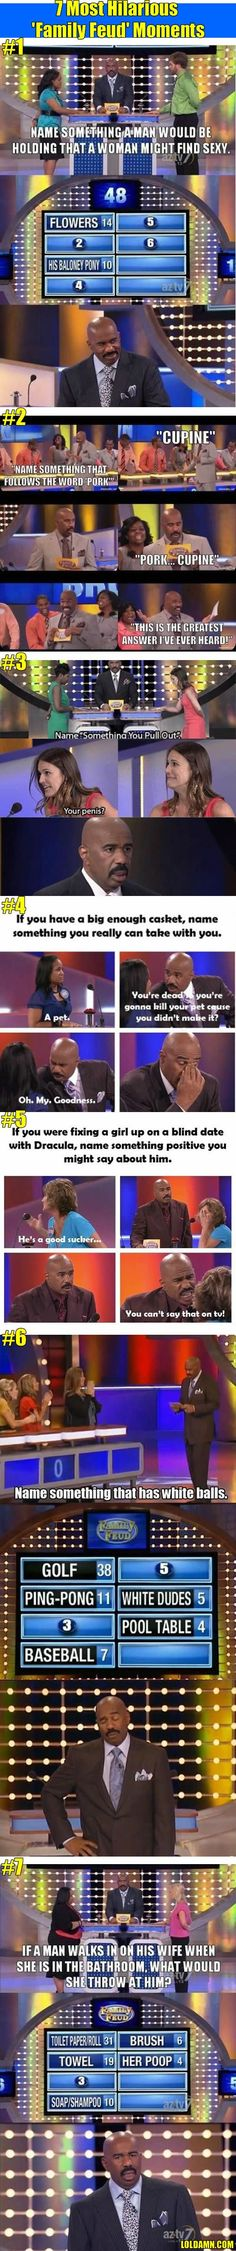 Steve Harvey's reactions are better than the actual responses.